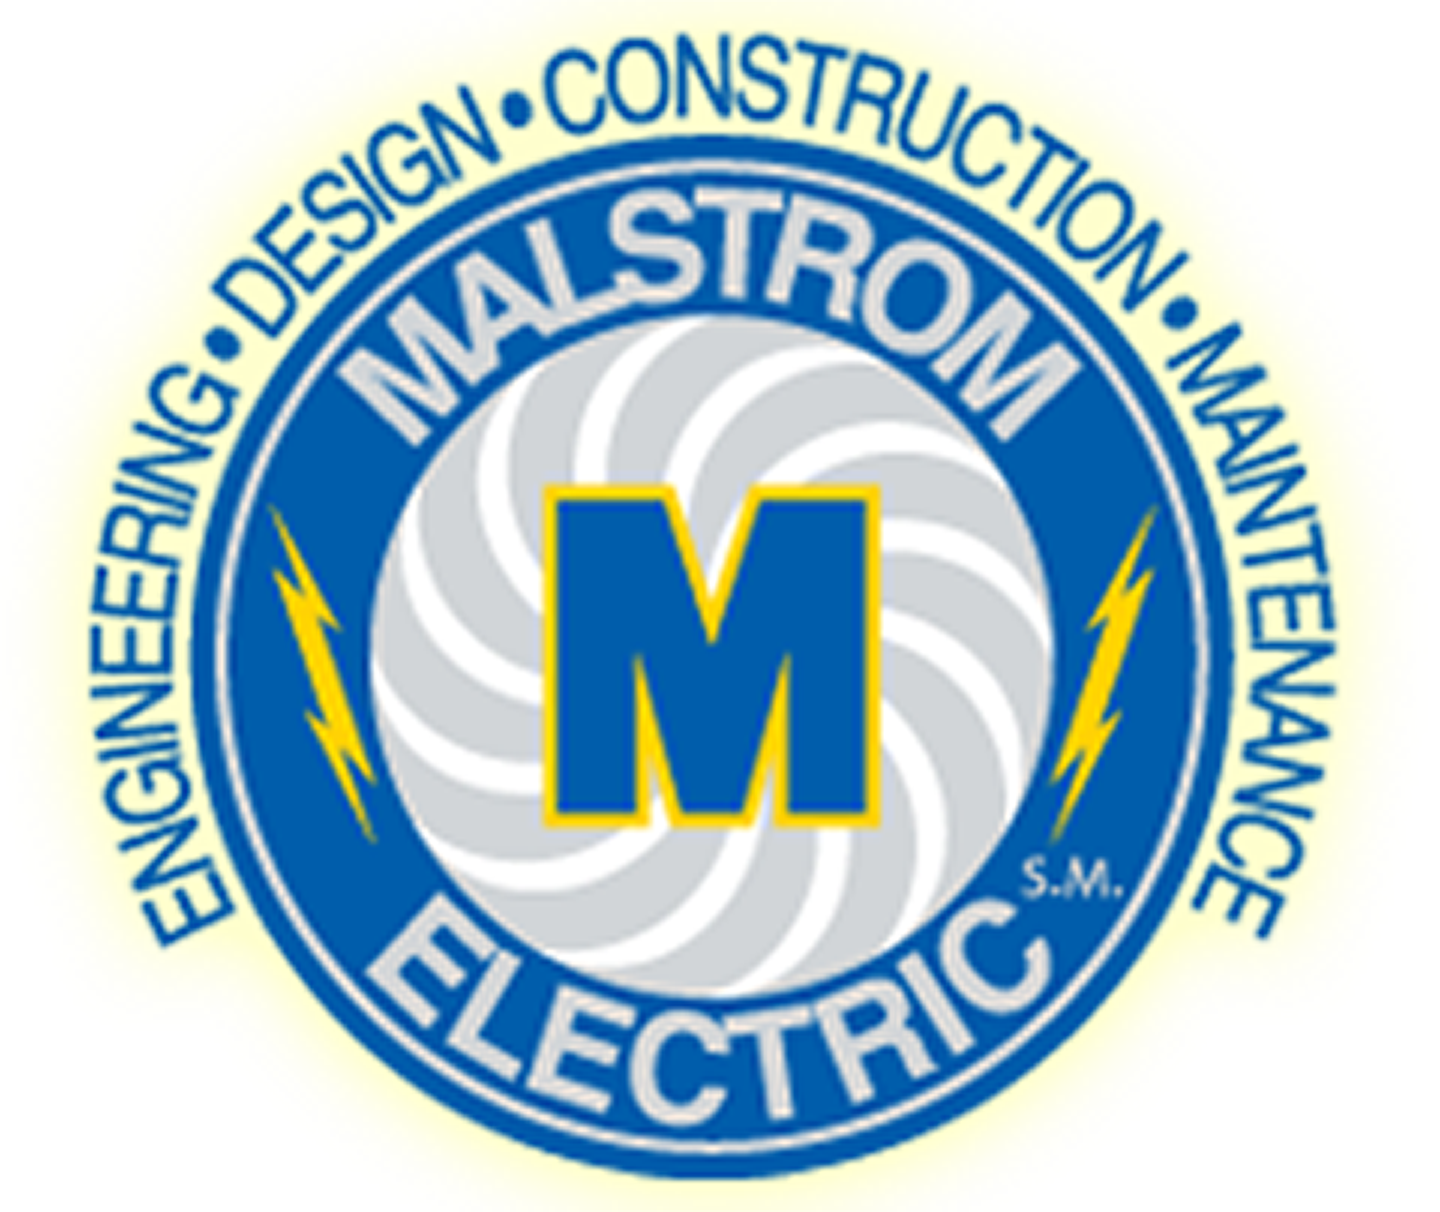 Malstrom Electric, Inc.